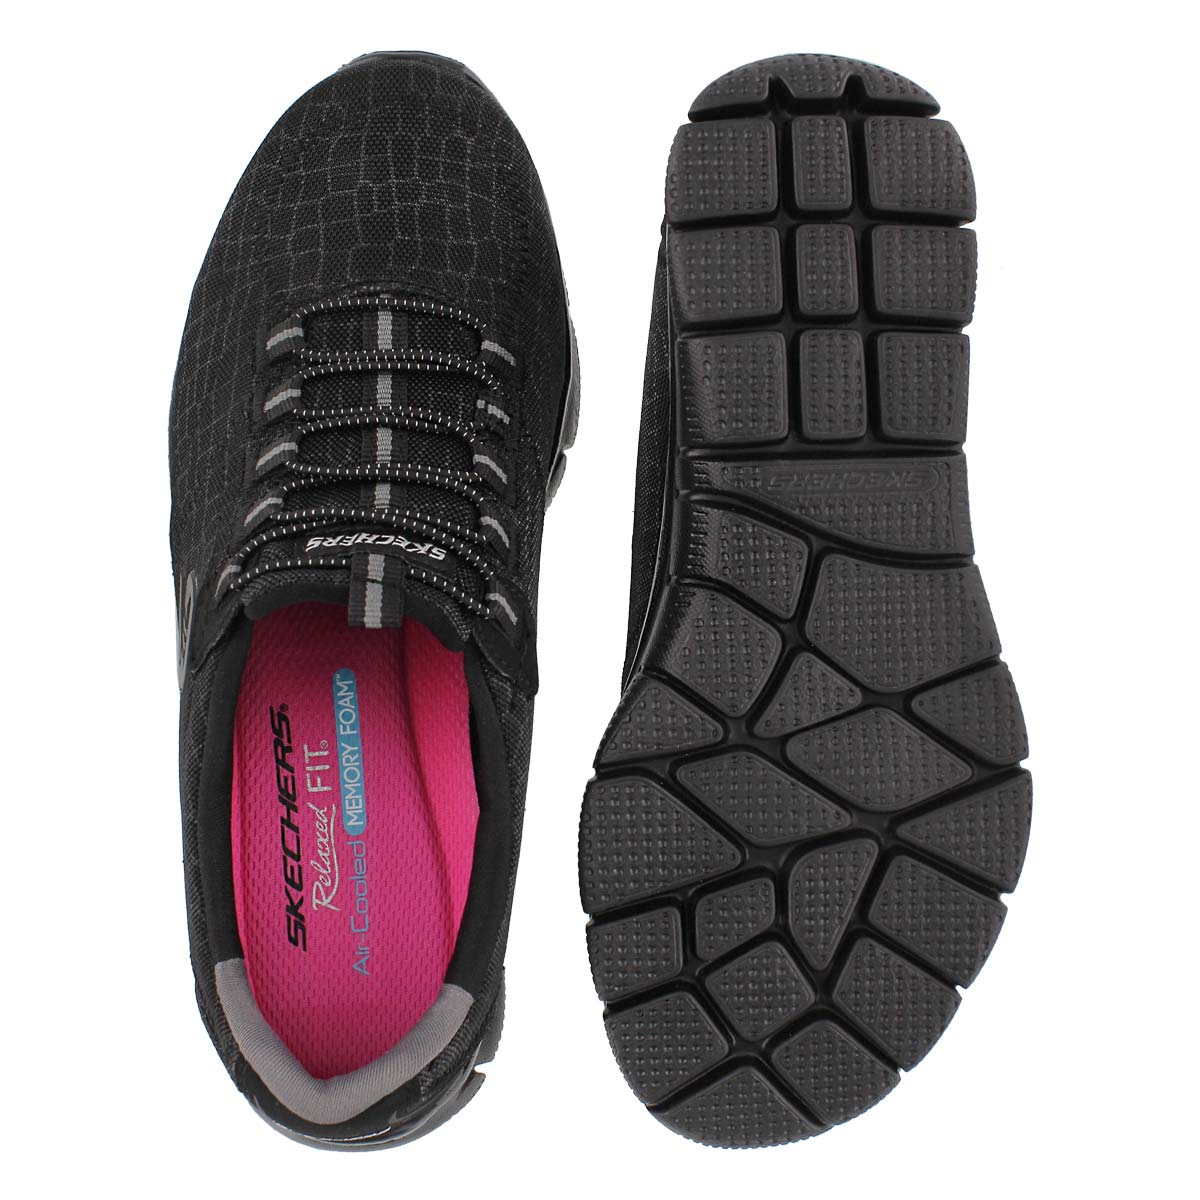 Lds Rock Around black slip on sneaker